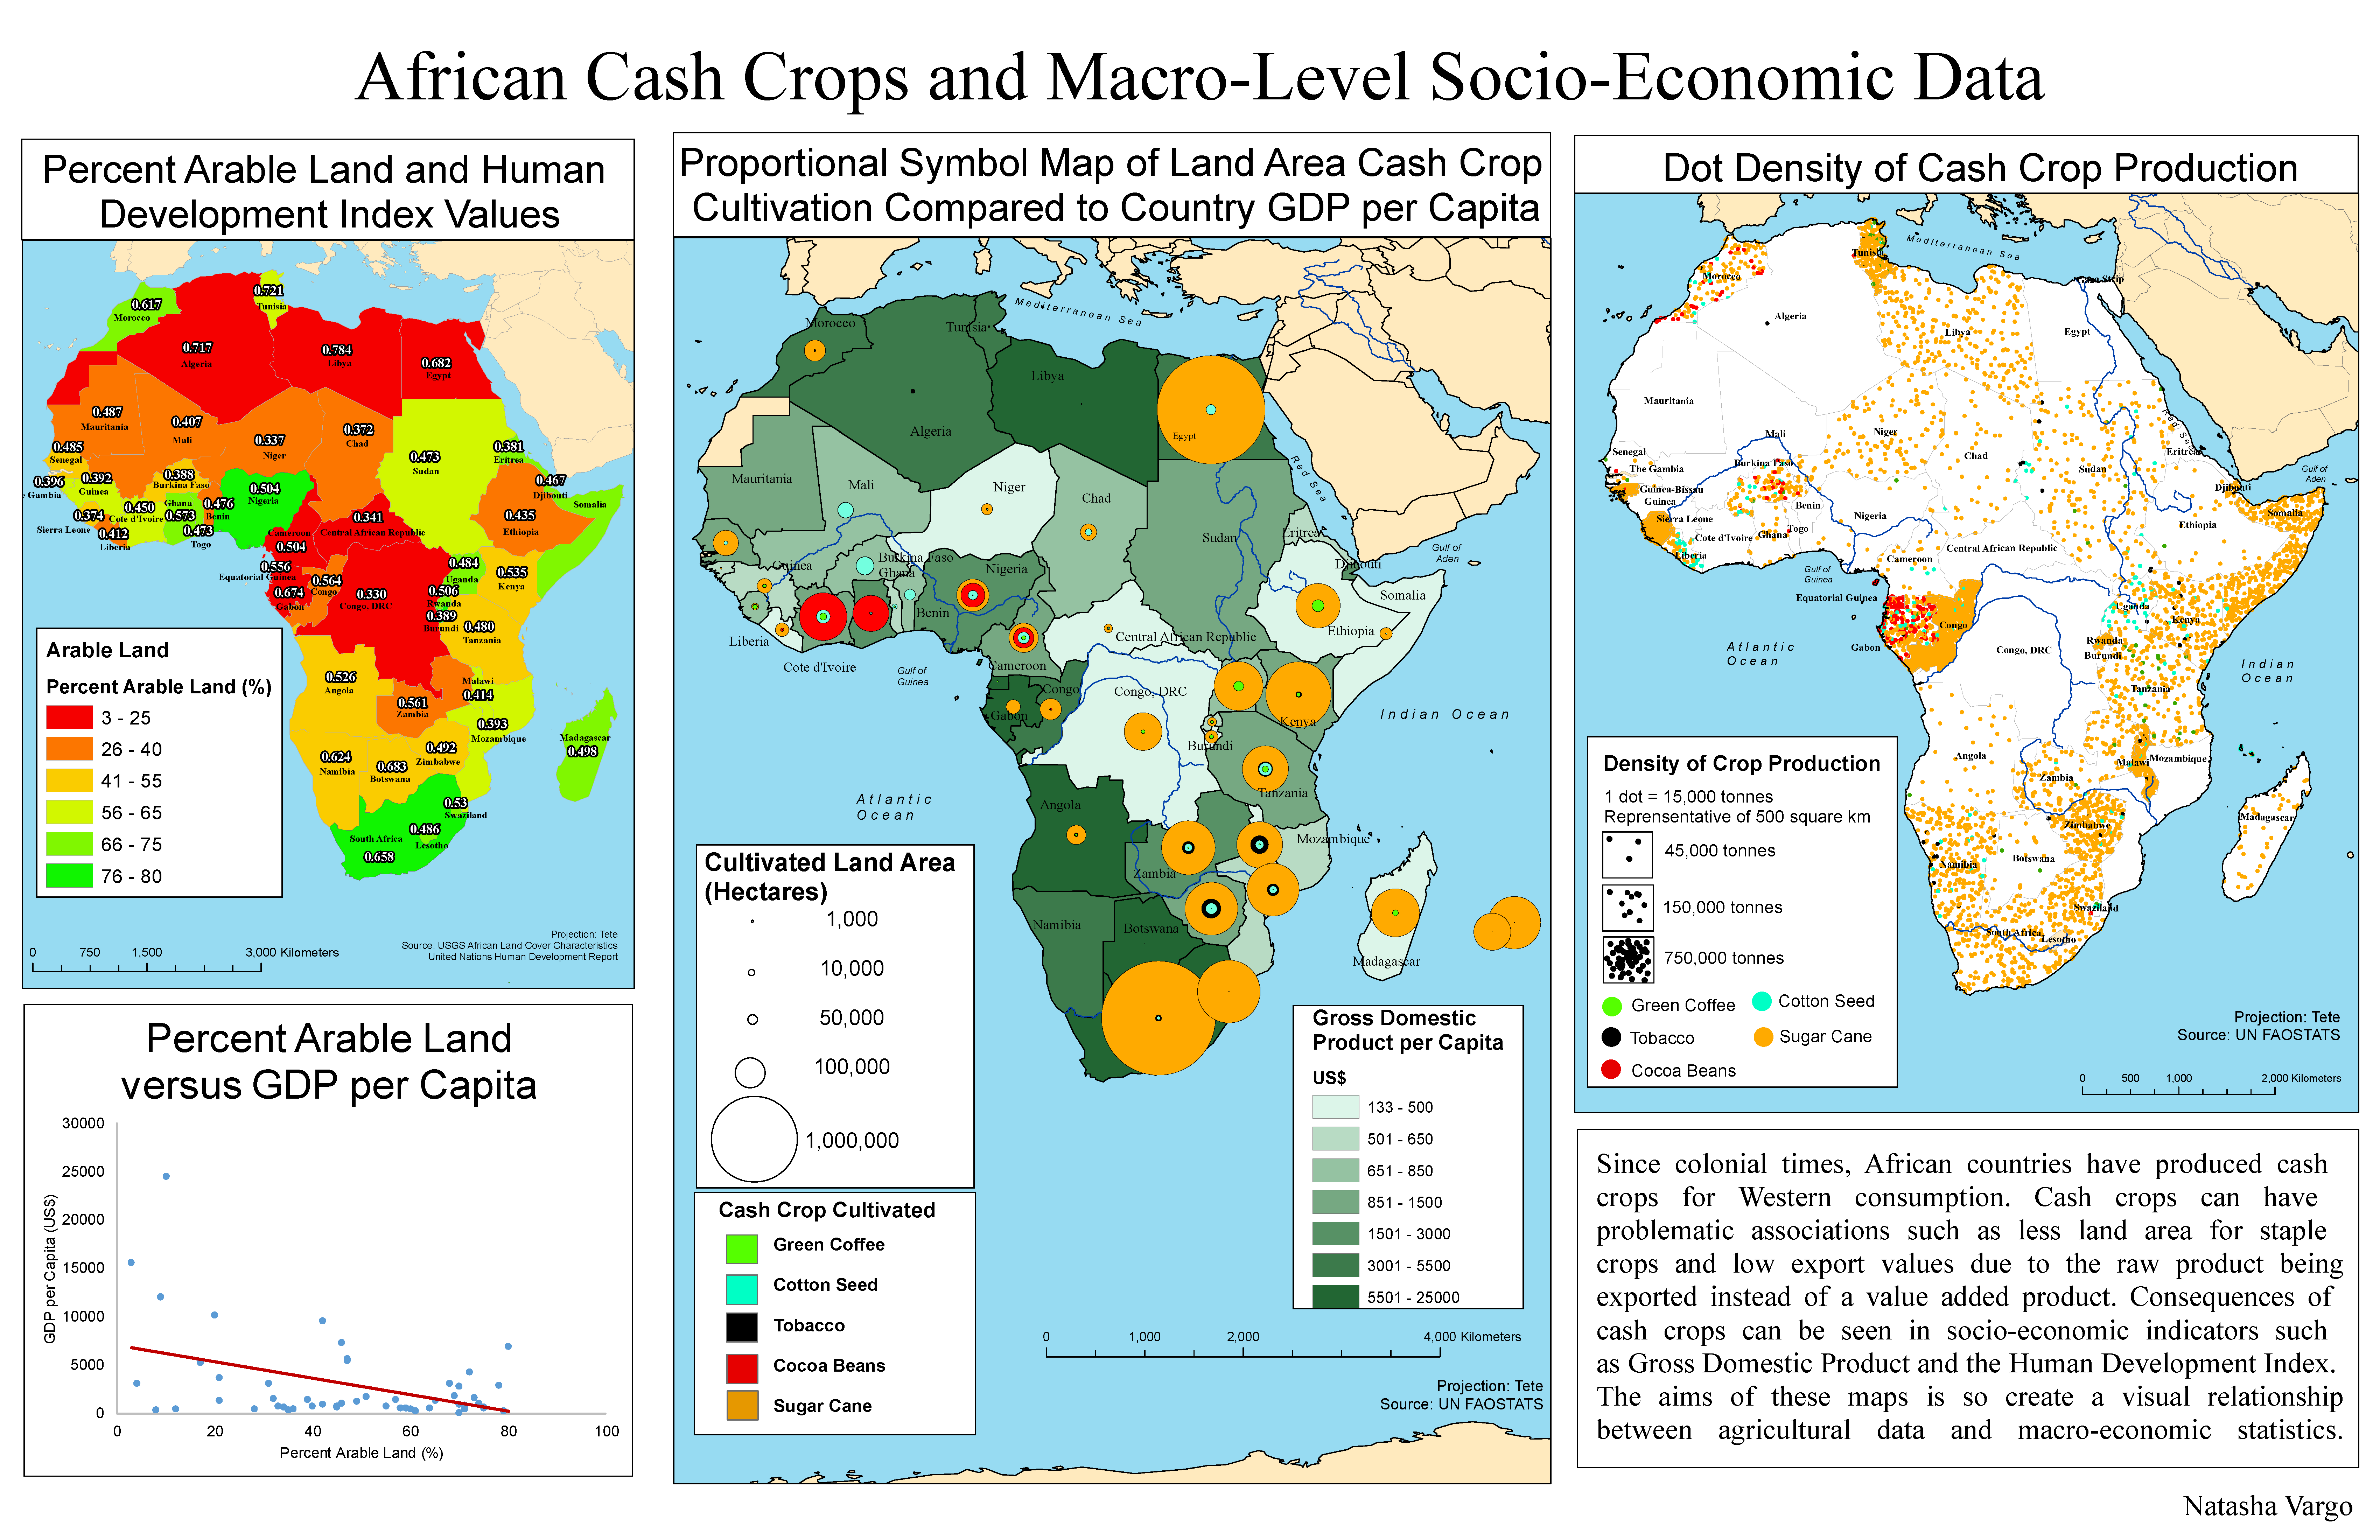 African Cash Crops and Macro-Level Socio-Economic Data